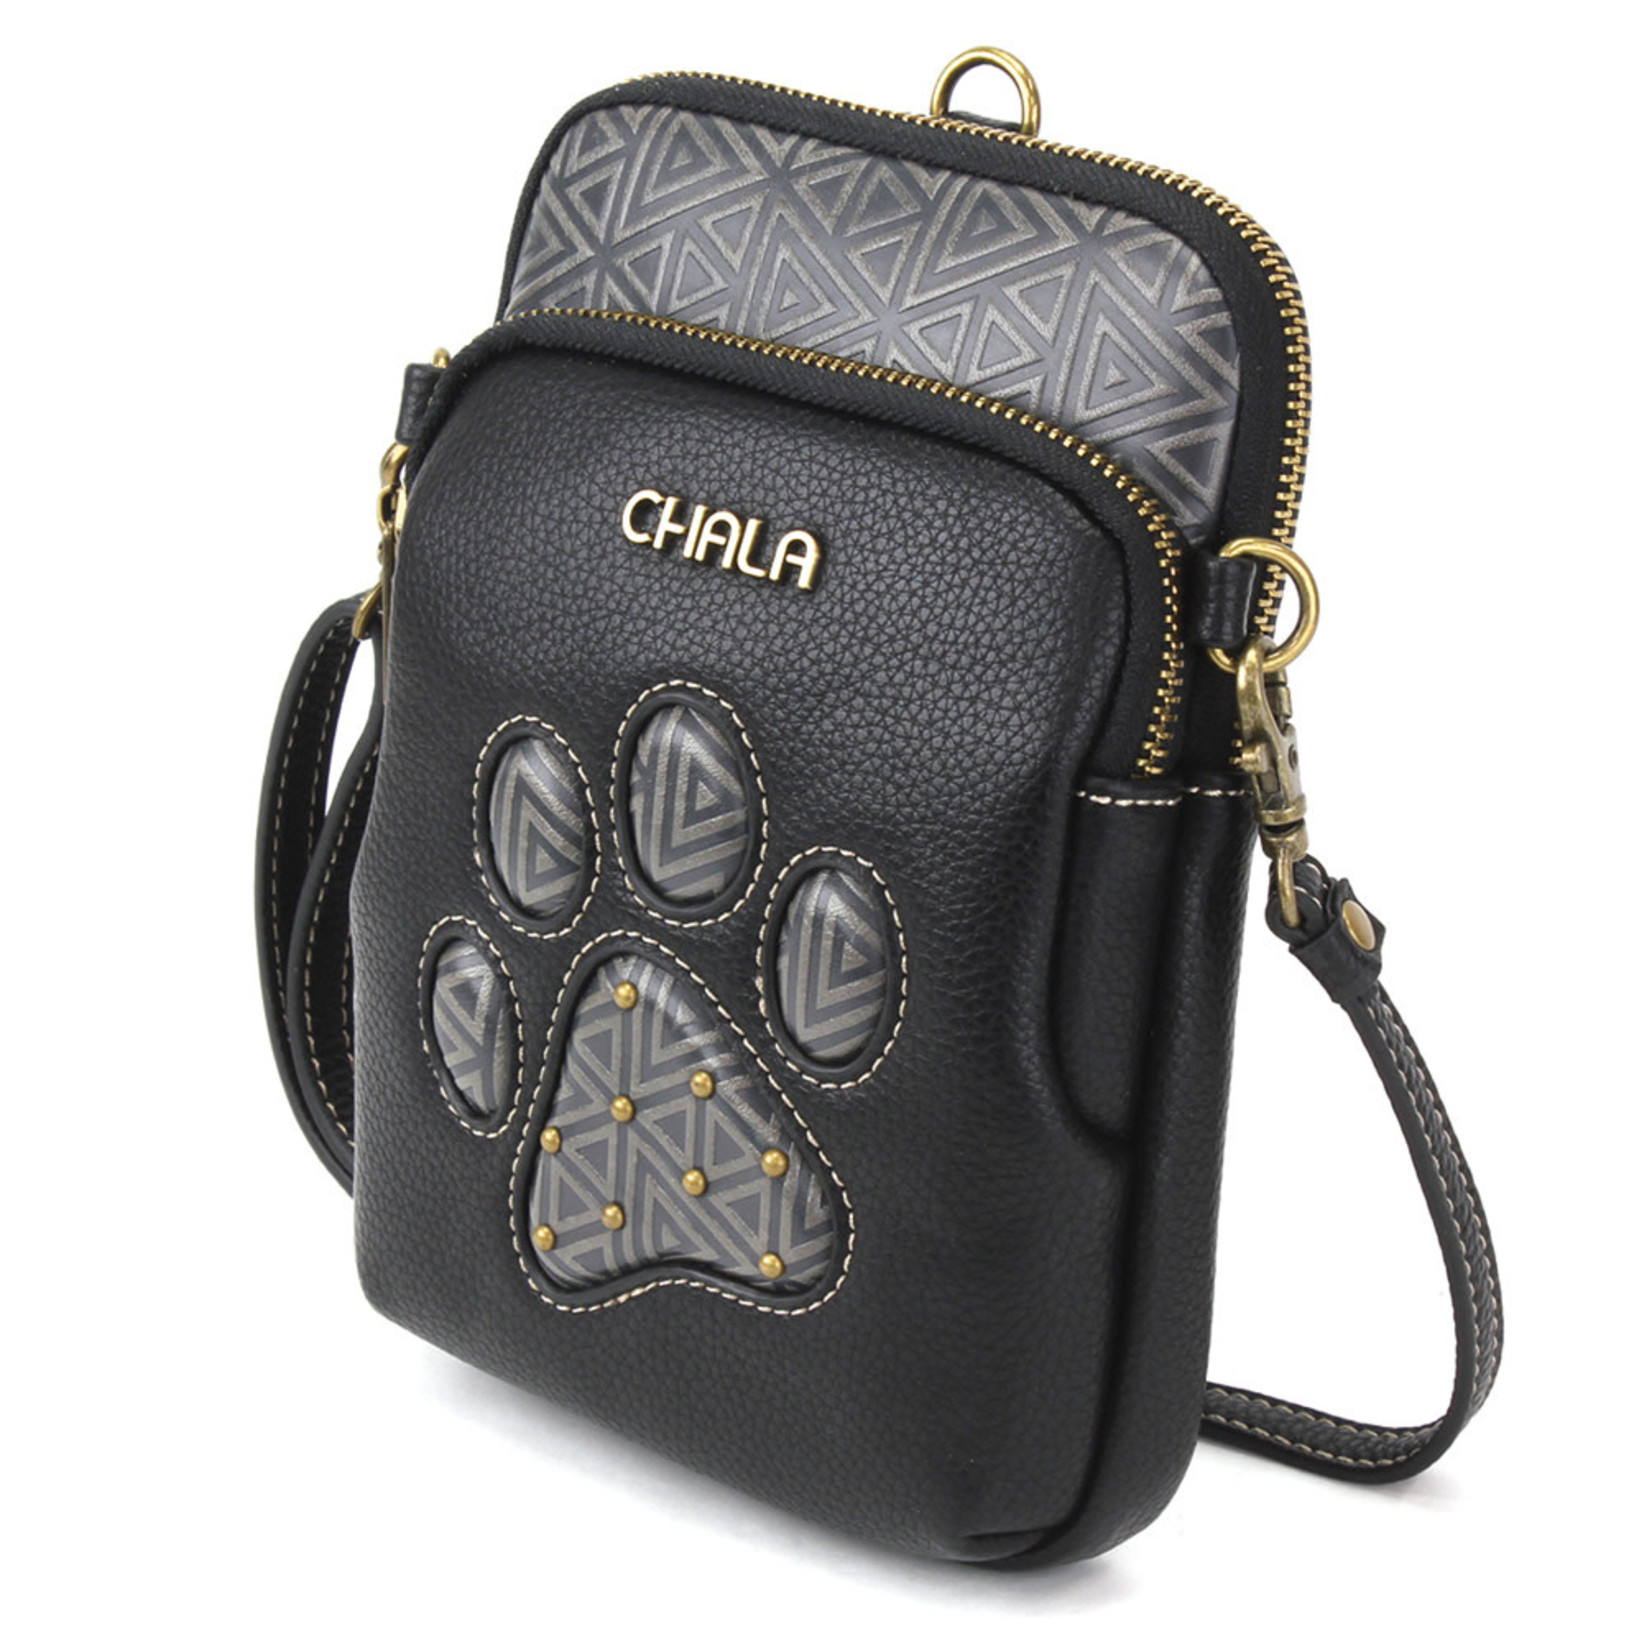 Chala Uni Cell Phone Crossbody - Paw Print - Black